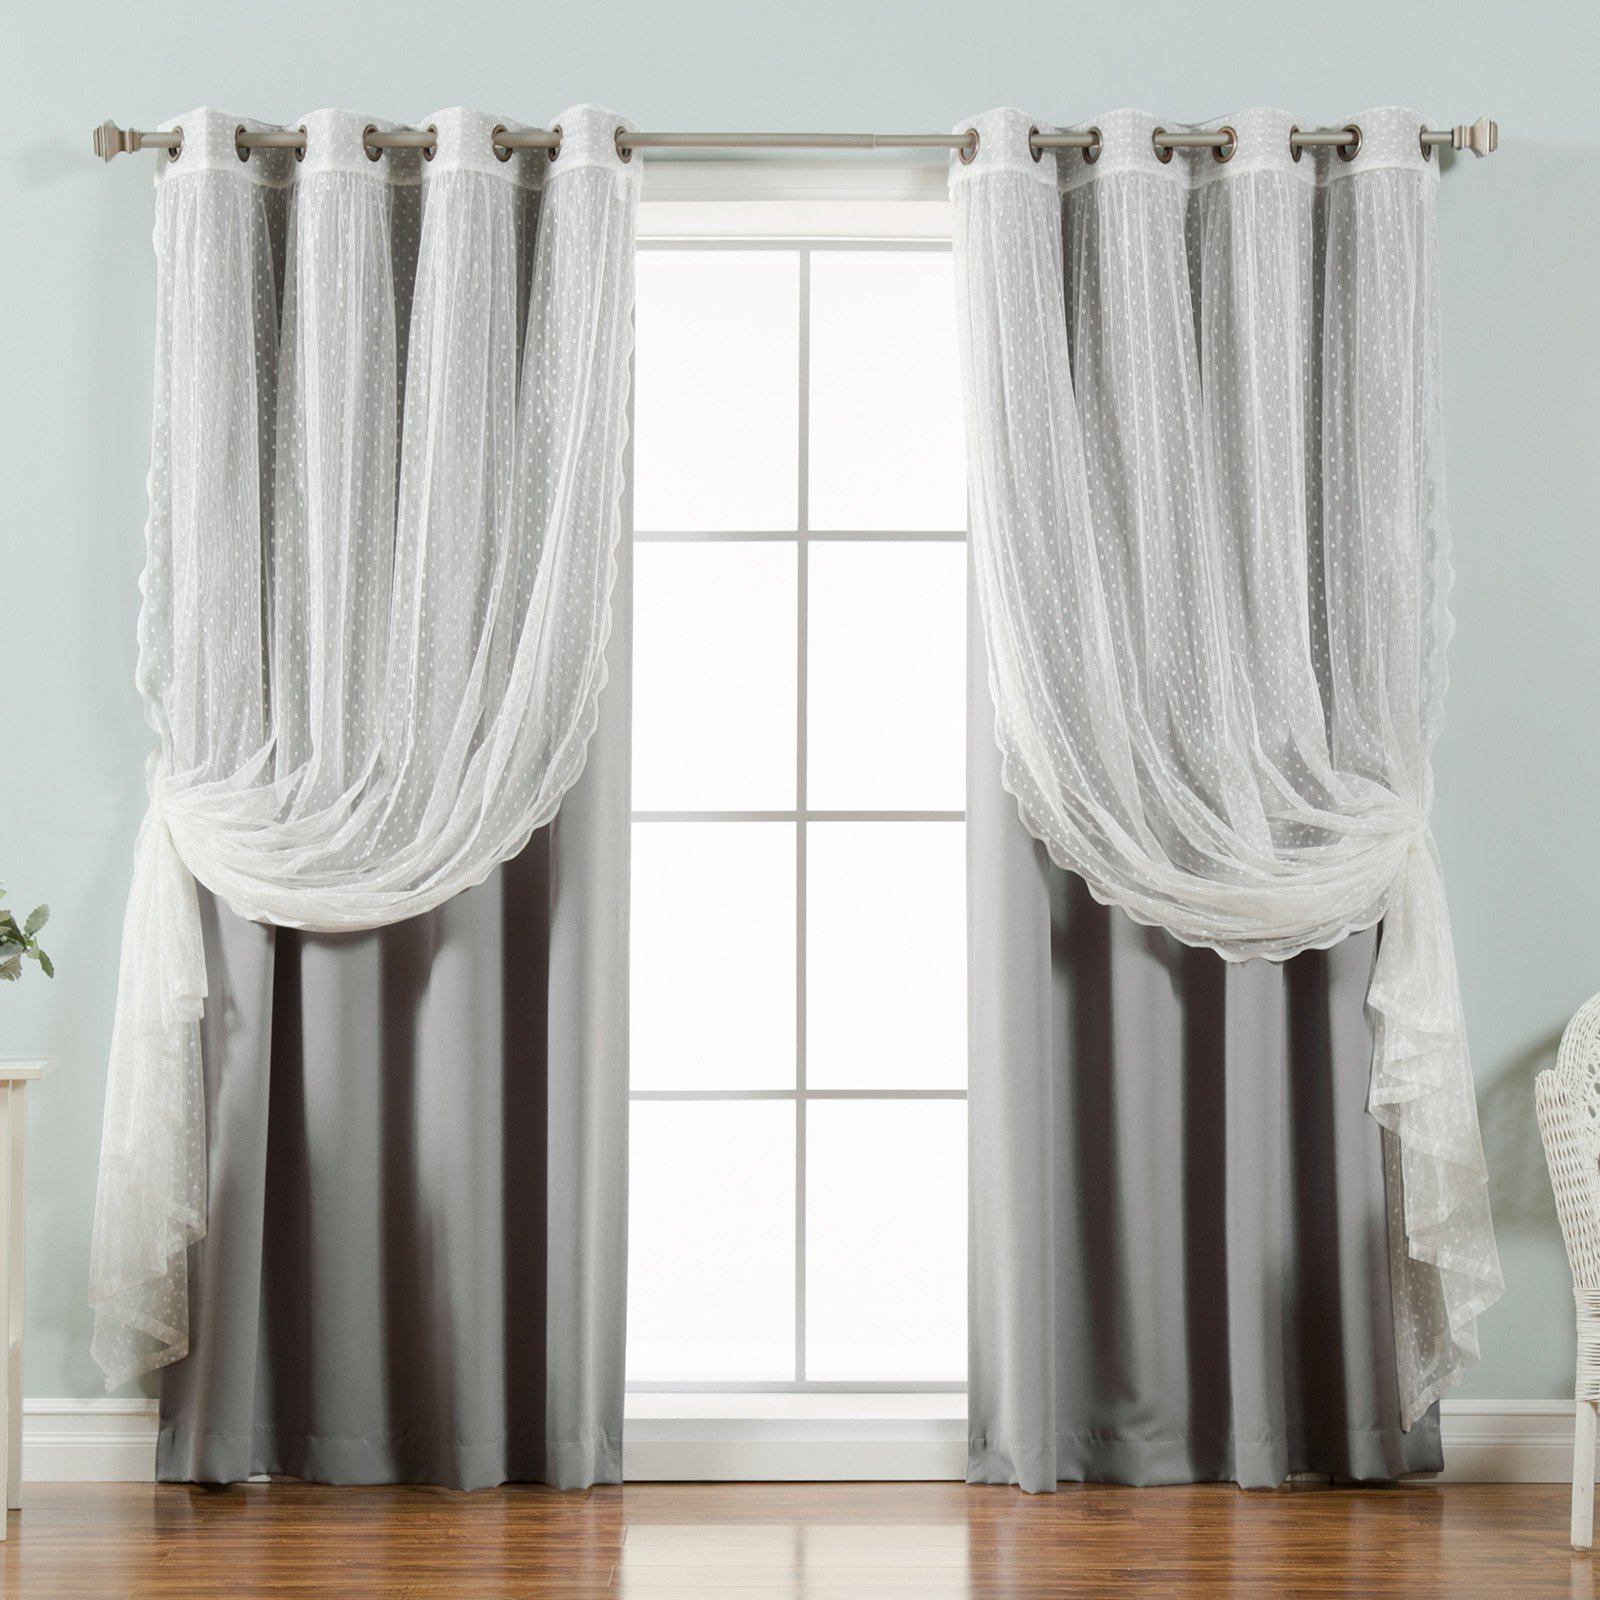 Best Home Fashion Dotted Tulle Blackout Mix & Match Curtain In Mix And Match Blackout Blackout Curtains Panel Sets (View 16 of 20)